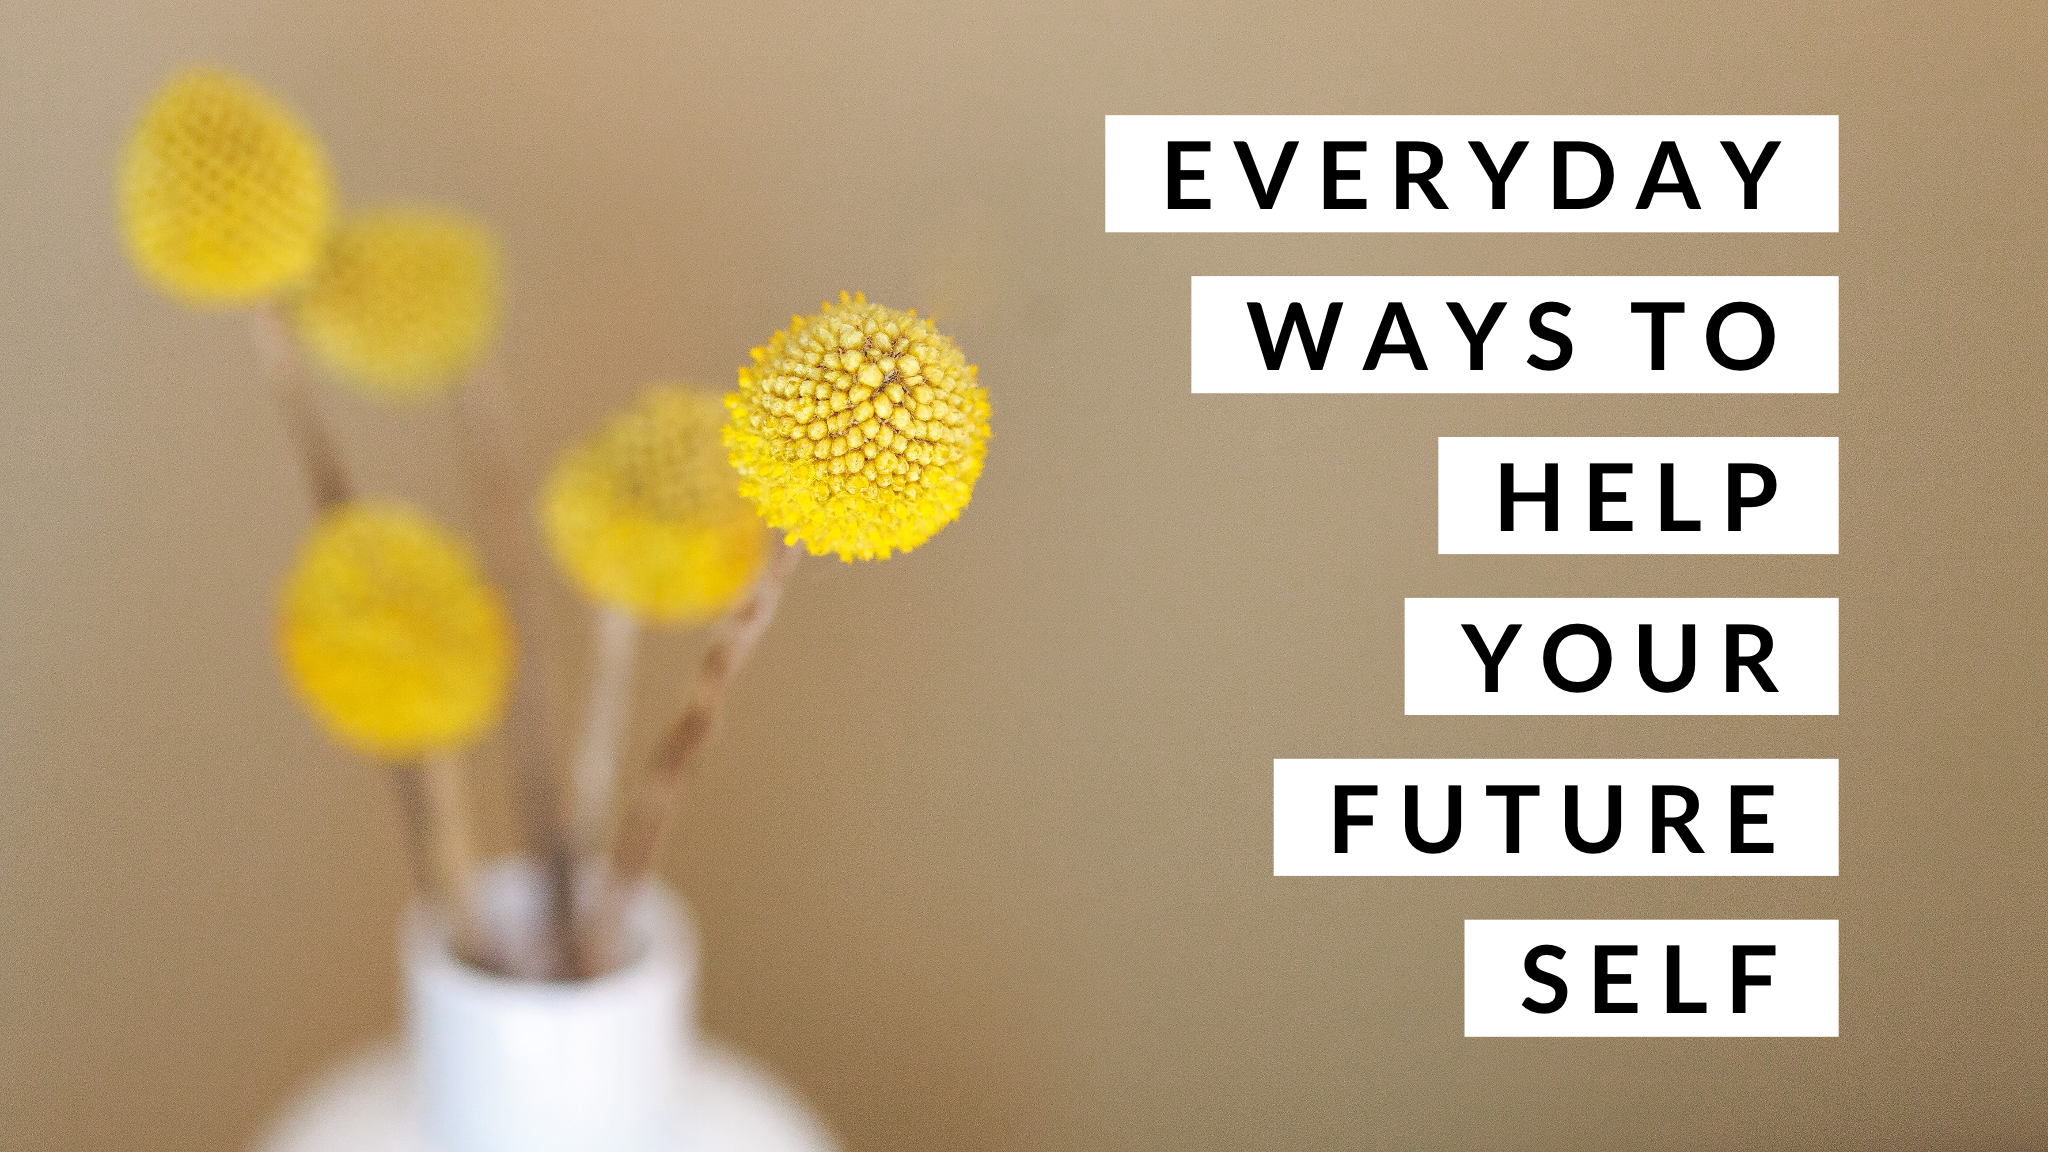 Everyday ways to help your future self - simple living